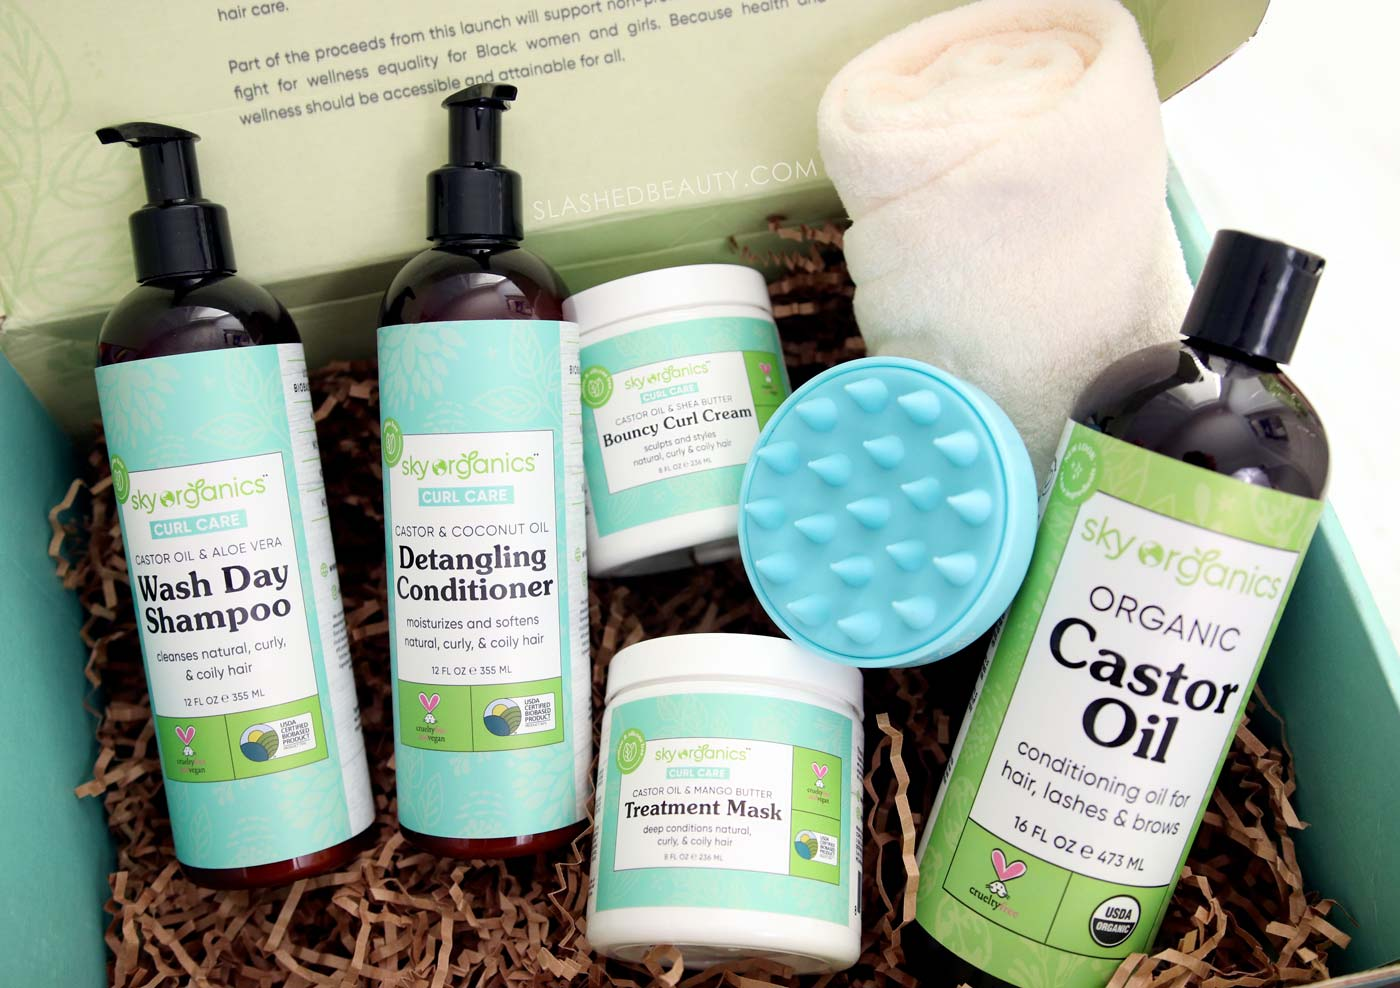 Vegan & Affordable Curly Hair Products from Sky Organics   Slashed Beauty